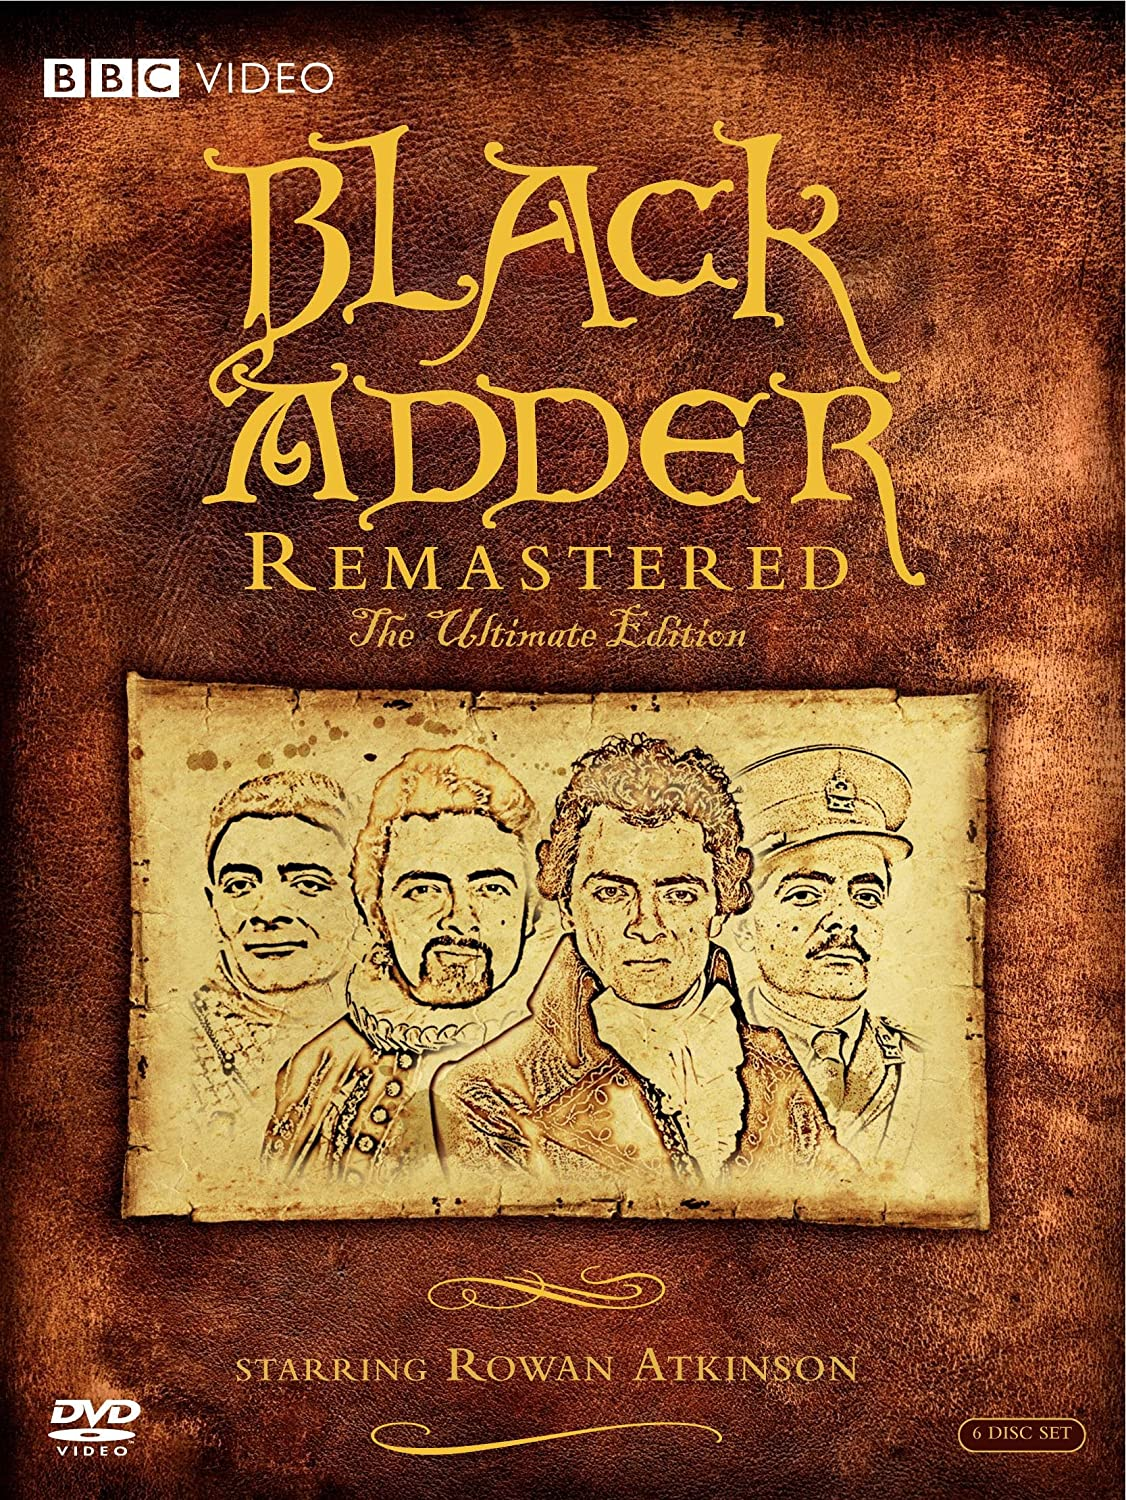 Black Adder: Remastered - The Ultimate Edition Rowan Atkinson Brian Blessed Elspet Gray Tim McInnerny